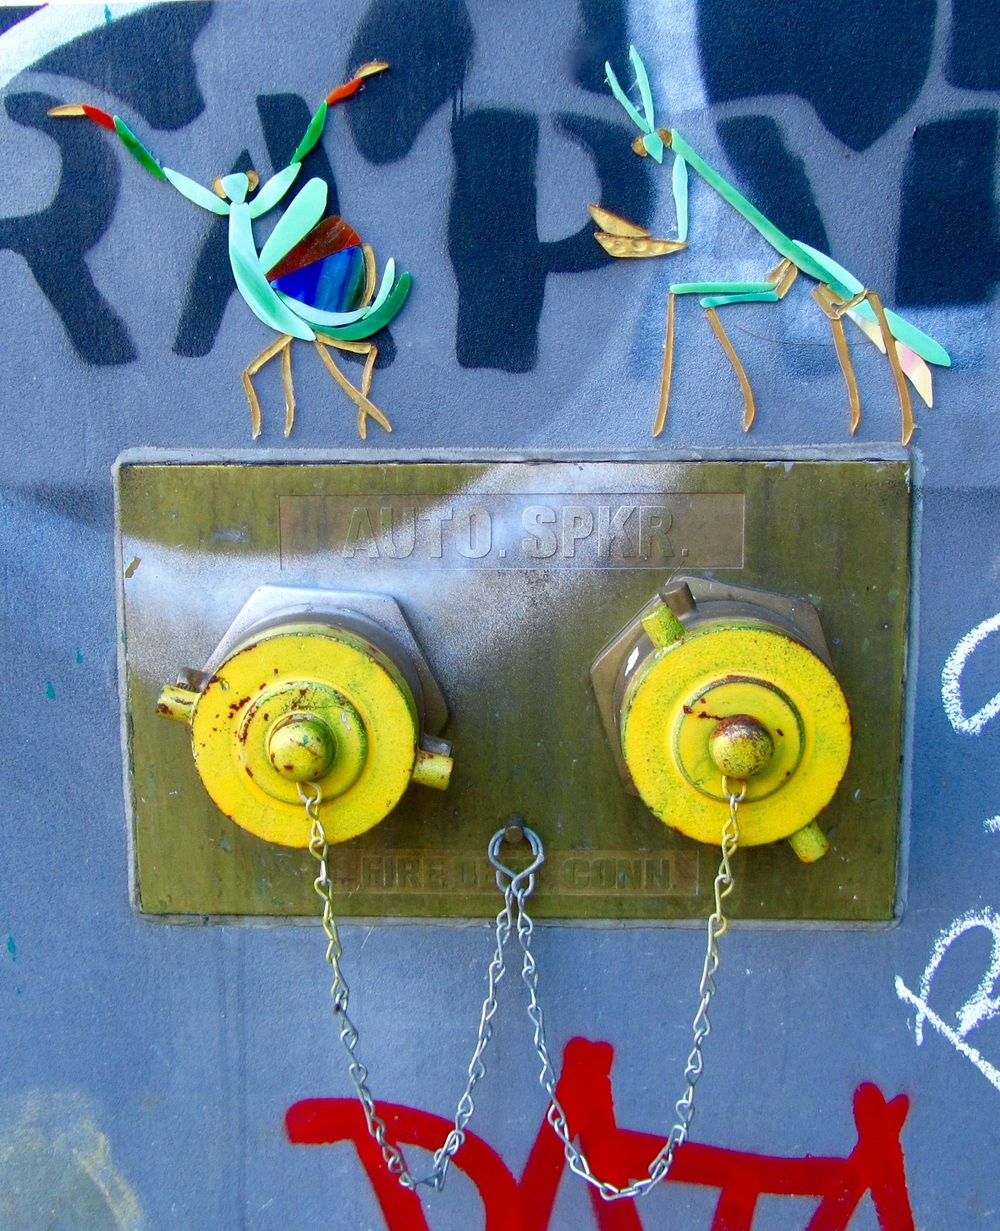 Wing-glass-street-art-praying-mantis-mating-dance-W.jpg